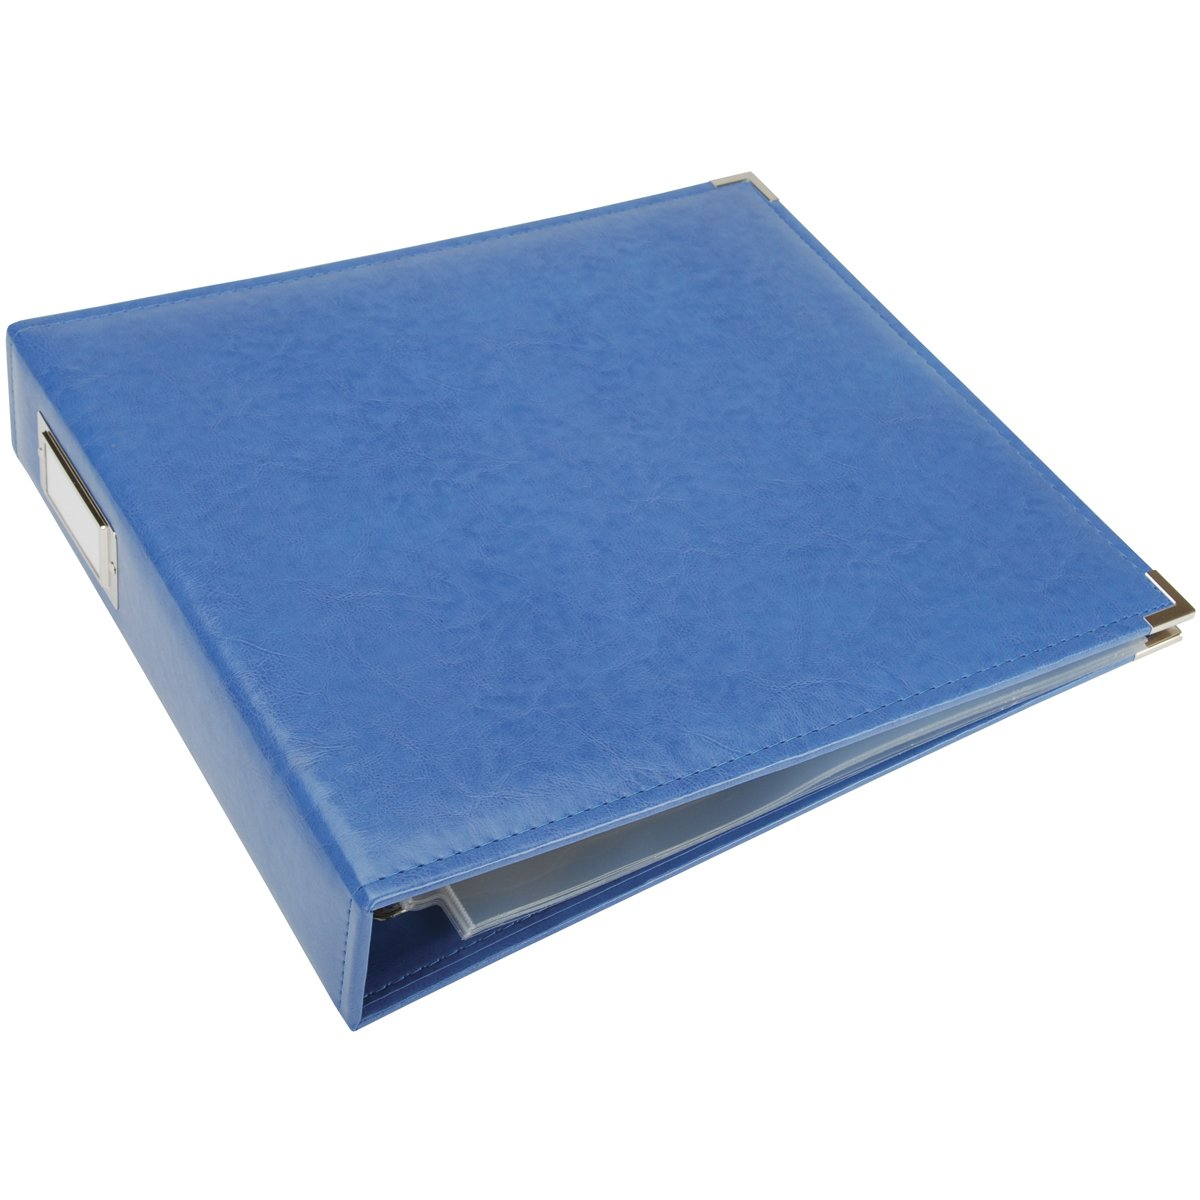 We R Memory Keepers We R Faux Leather 3-Ring Binder 13-Inch by 15-Inch, Country Blue